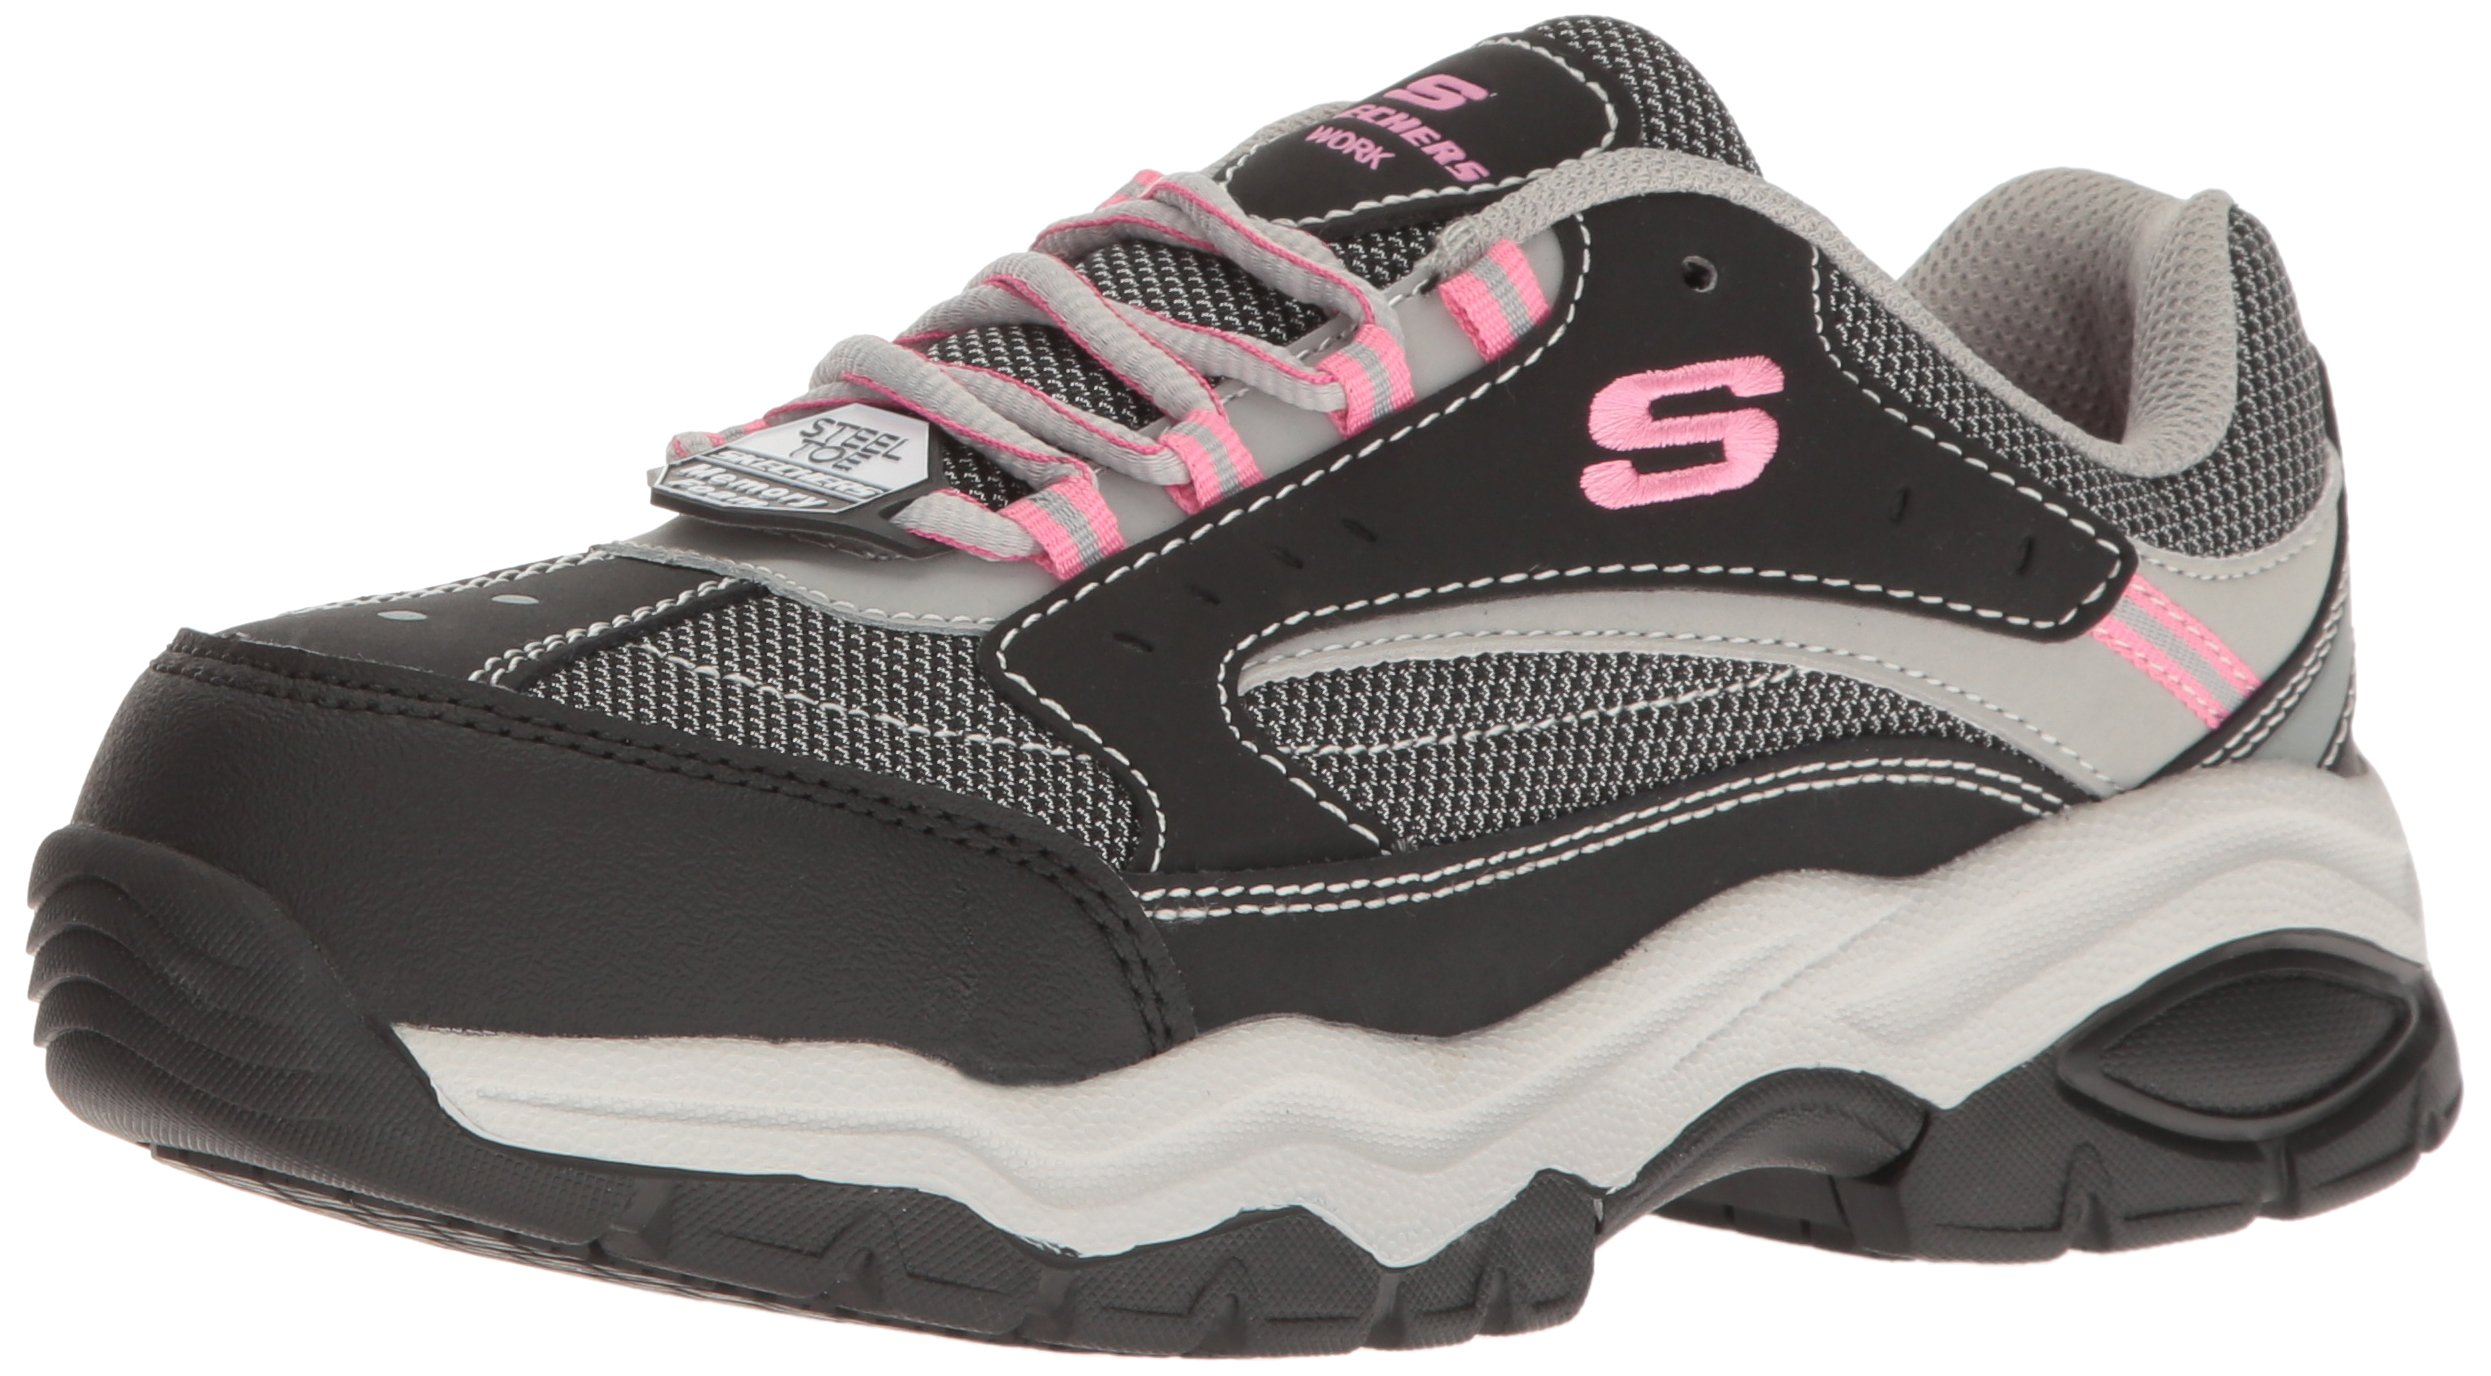 Skechers for Work Women's BISCO Work Shoe, Black/Gray, 8.5 M US